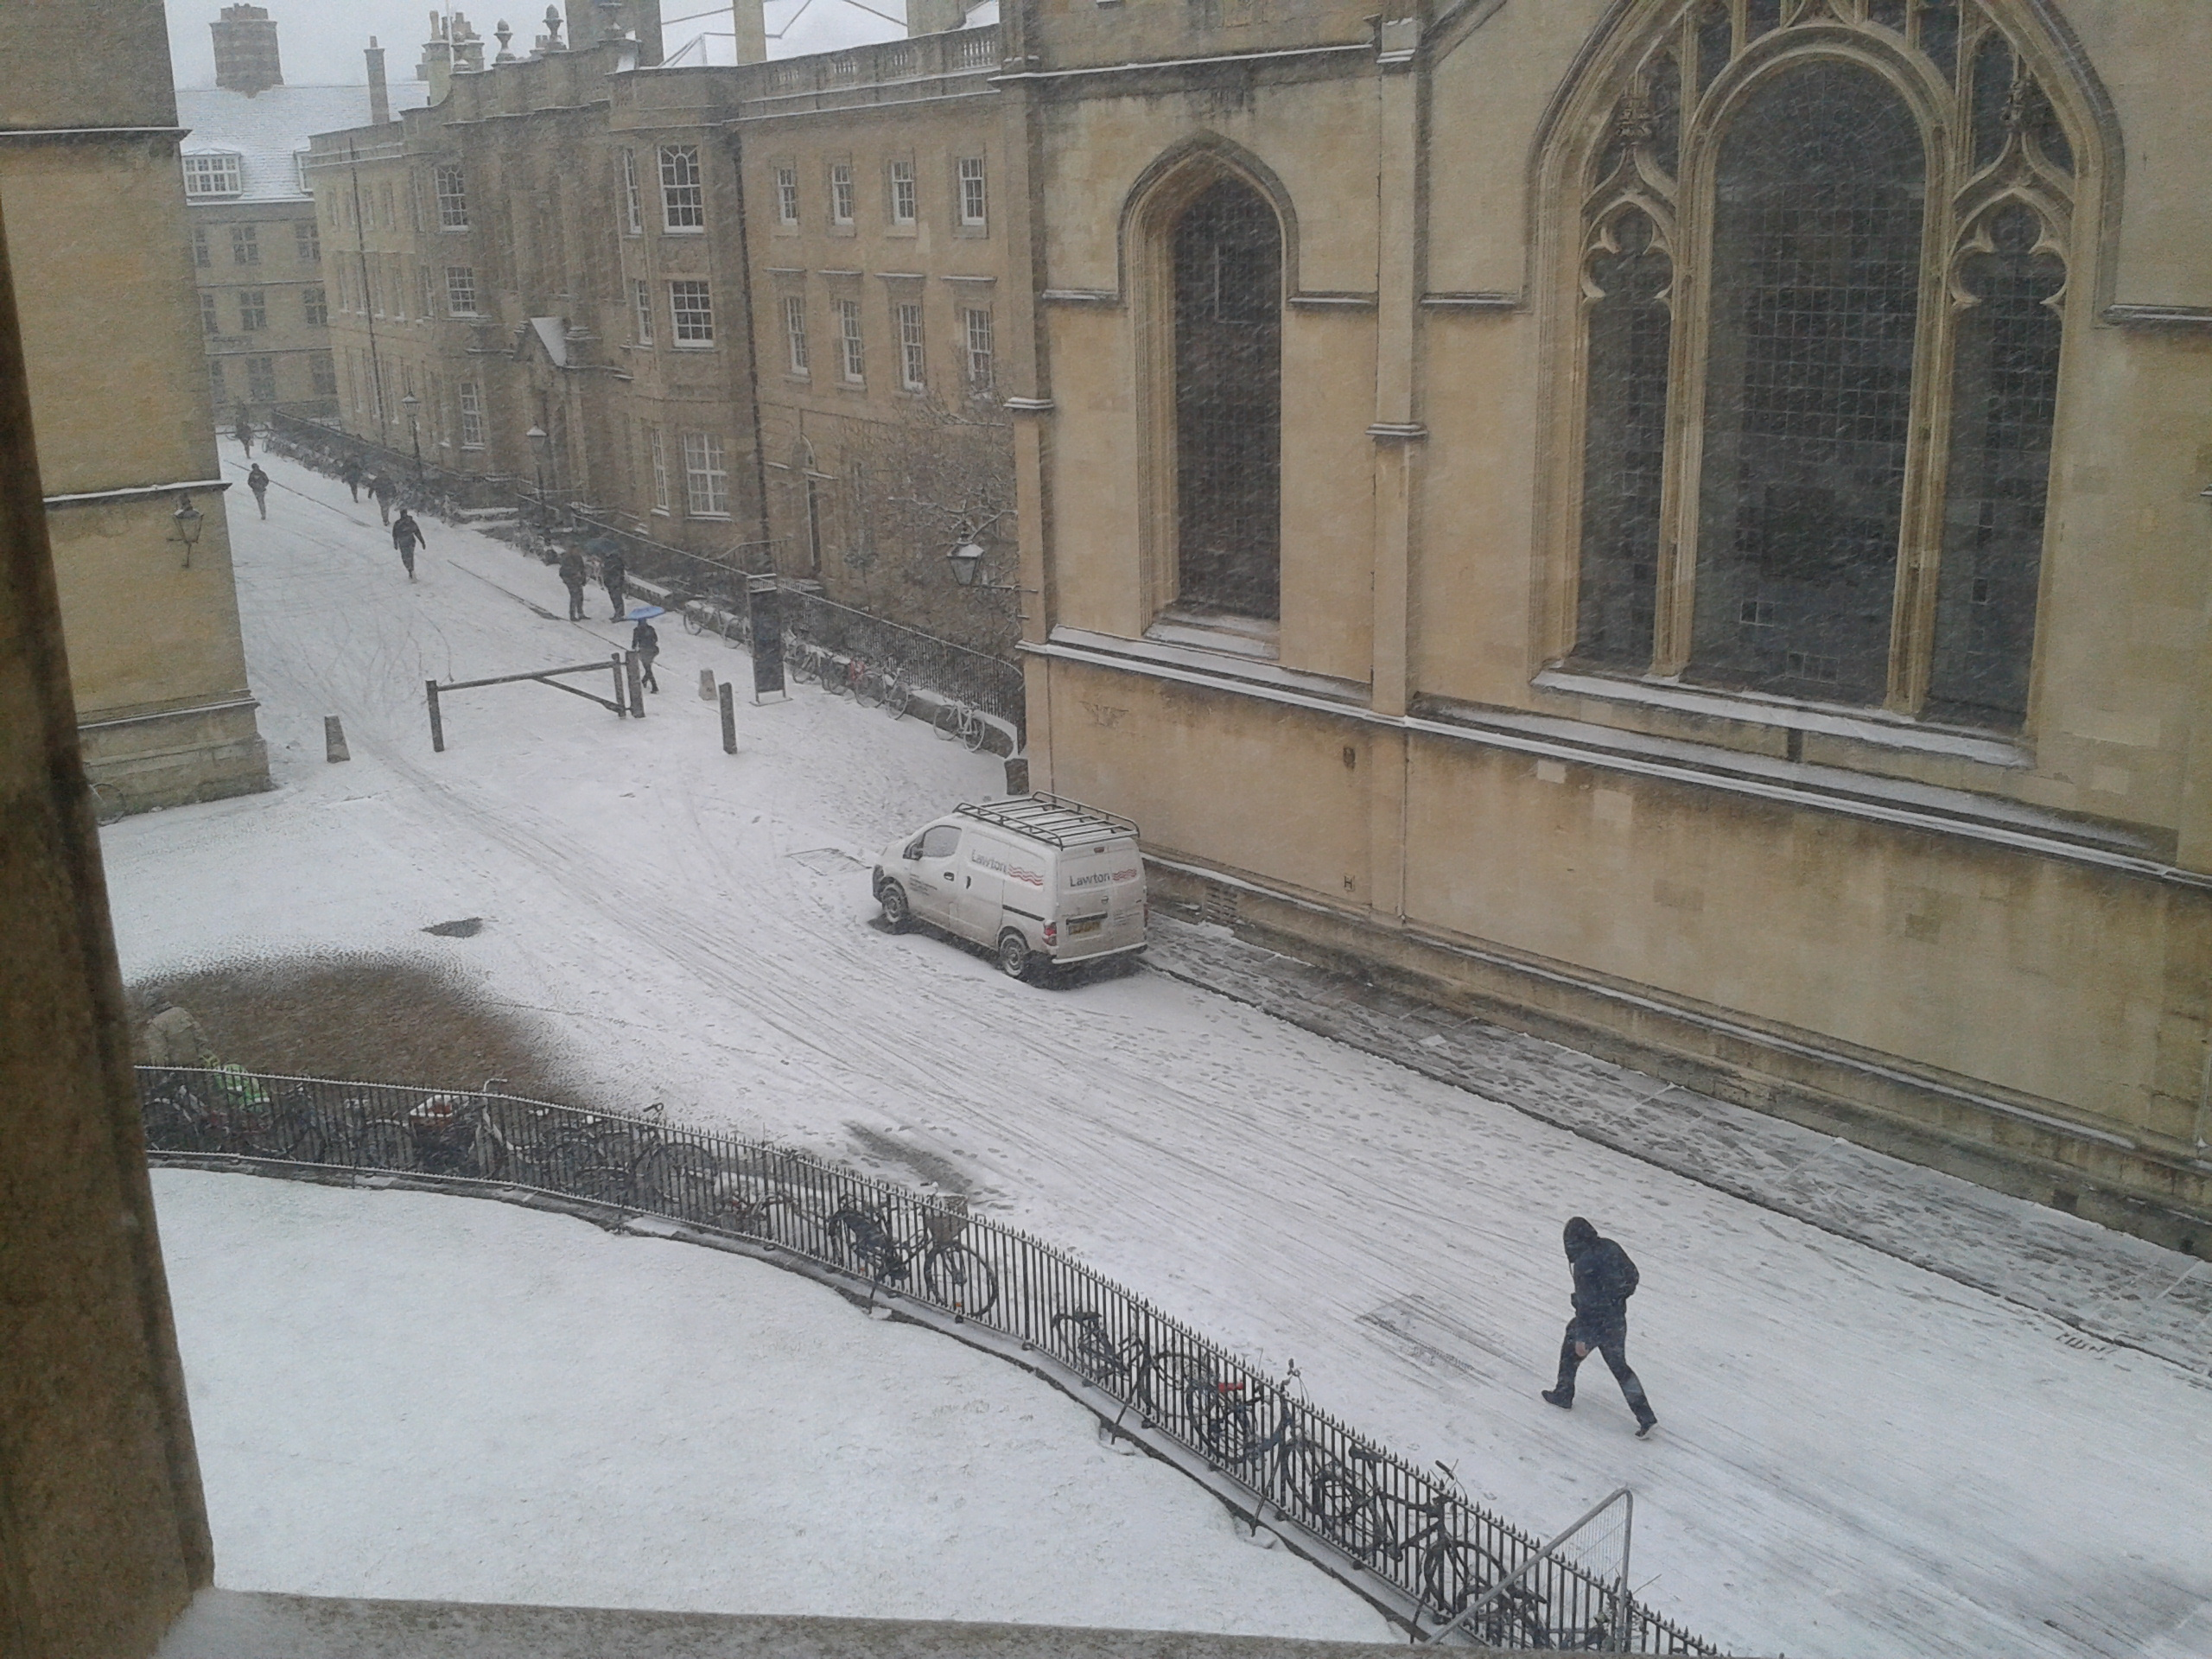 Current view from Radcliffe Camera